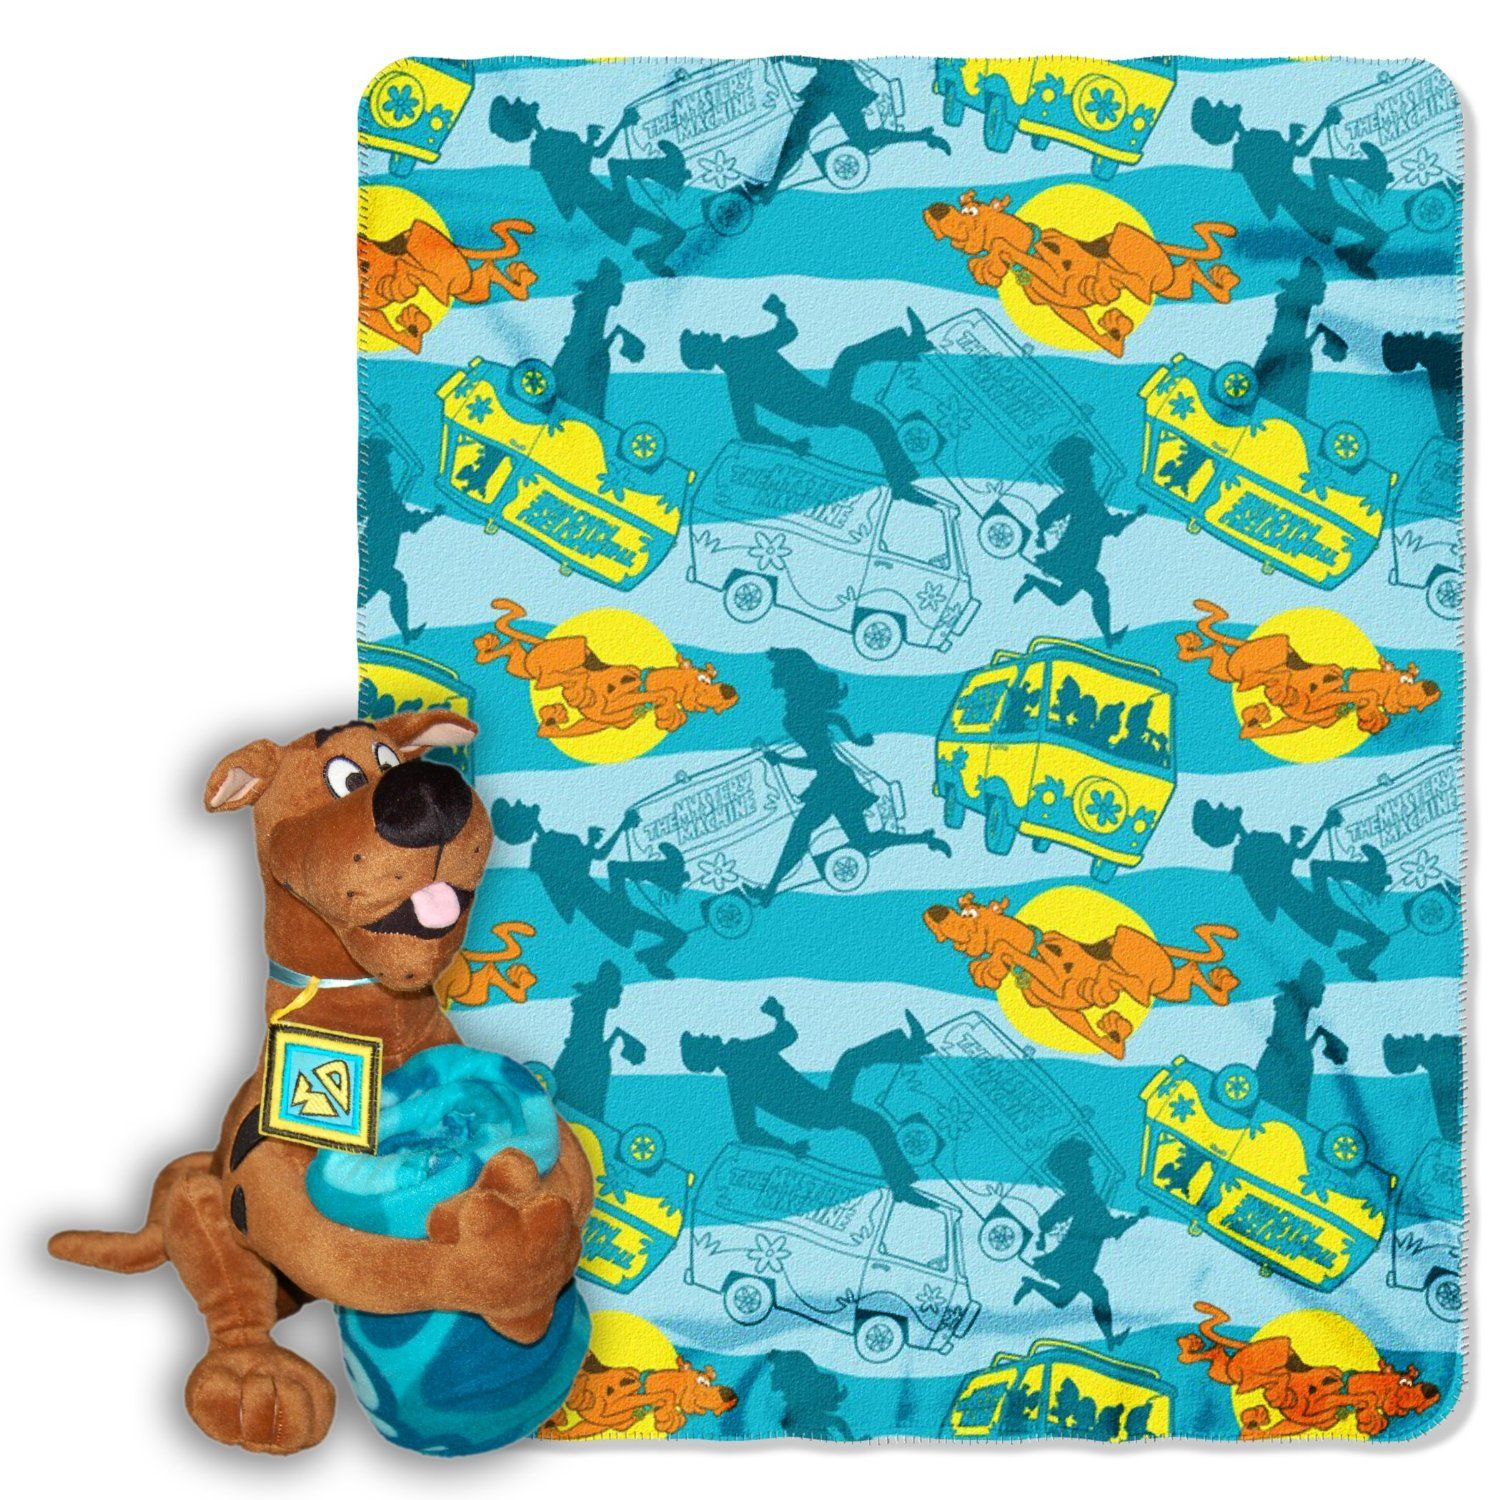 Scooby Doo blanket with pillow plush  Bedroom Theme